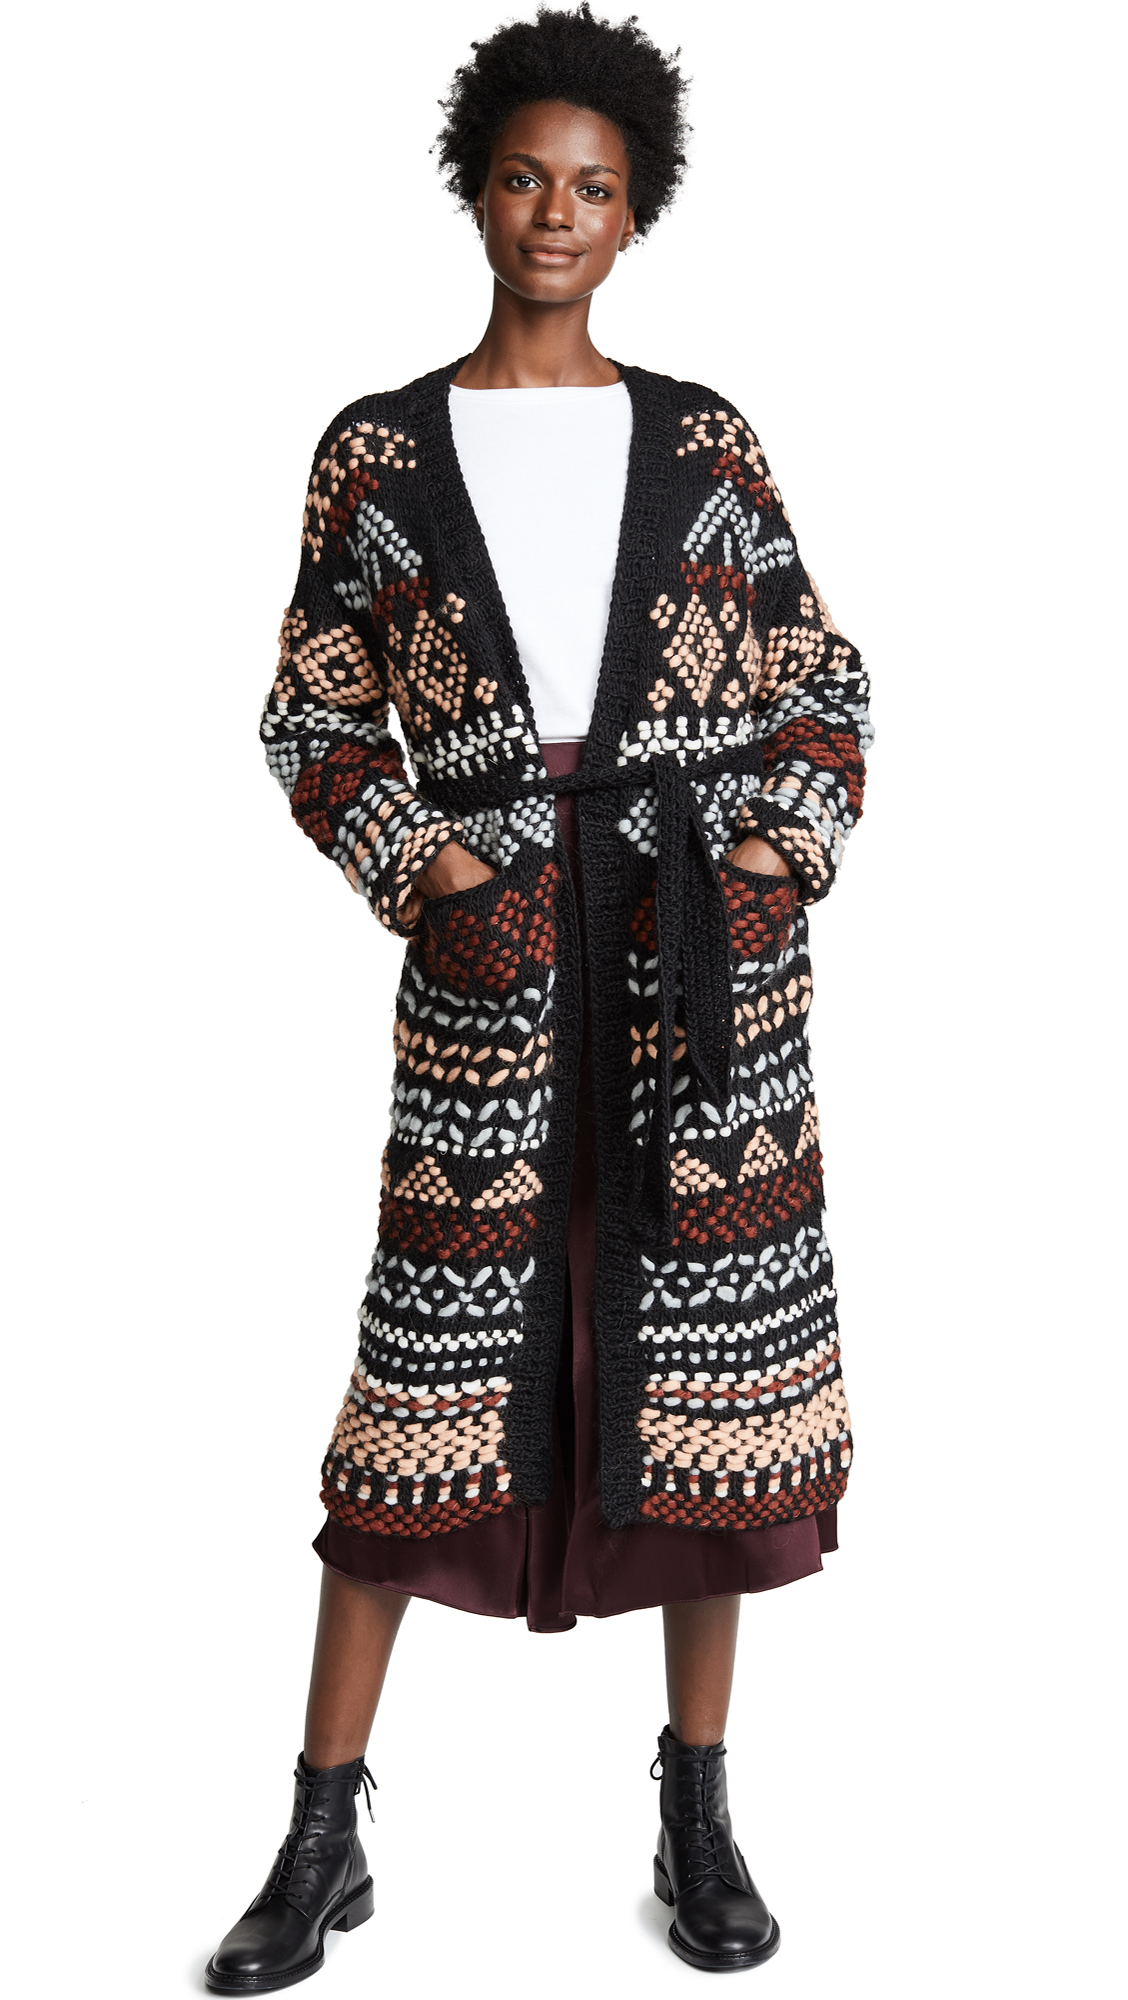 ONE ON ONE Imagination Coat in Black Combo